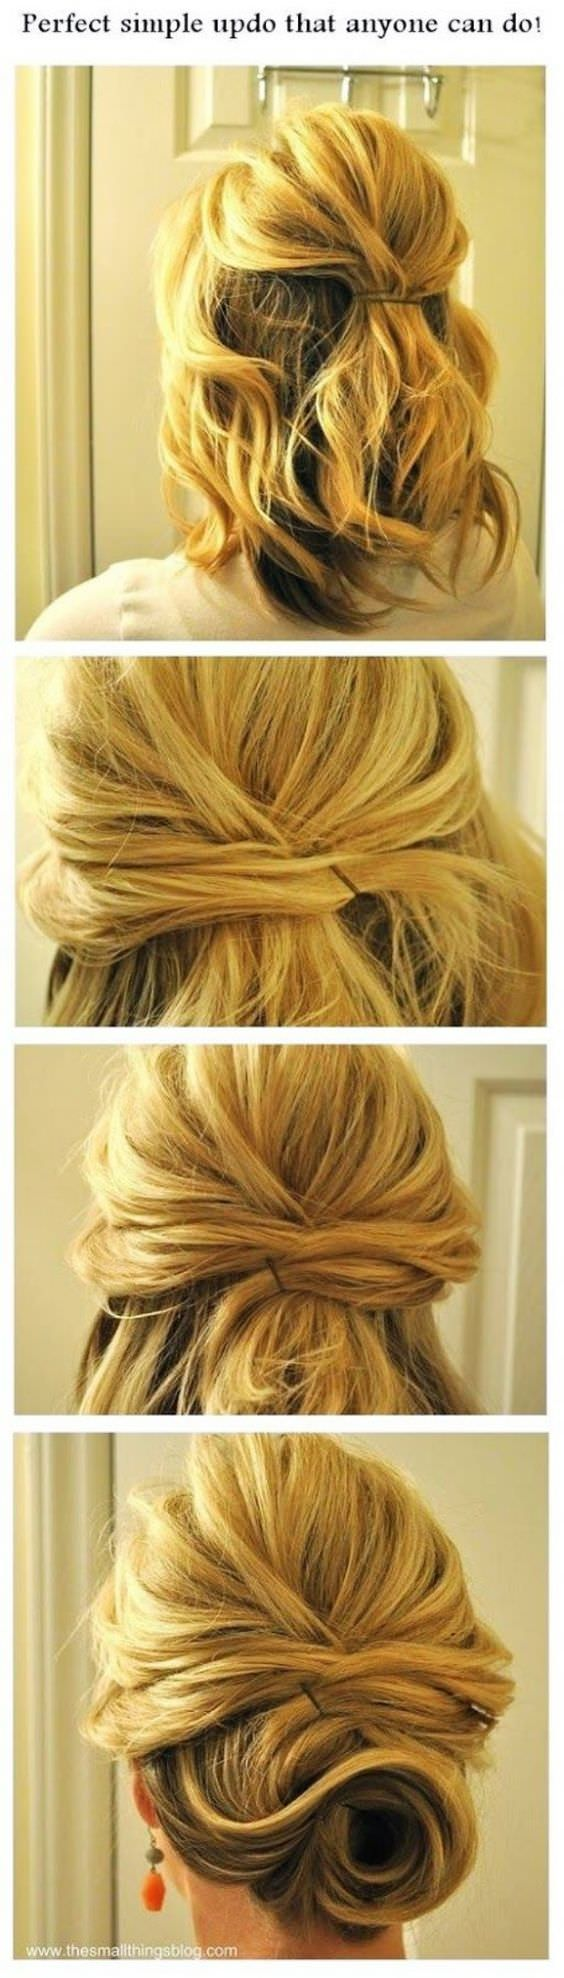 15 Cute and Easy Hairstyle Tutorials For Medium-Length Hair - Fashion Daily